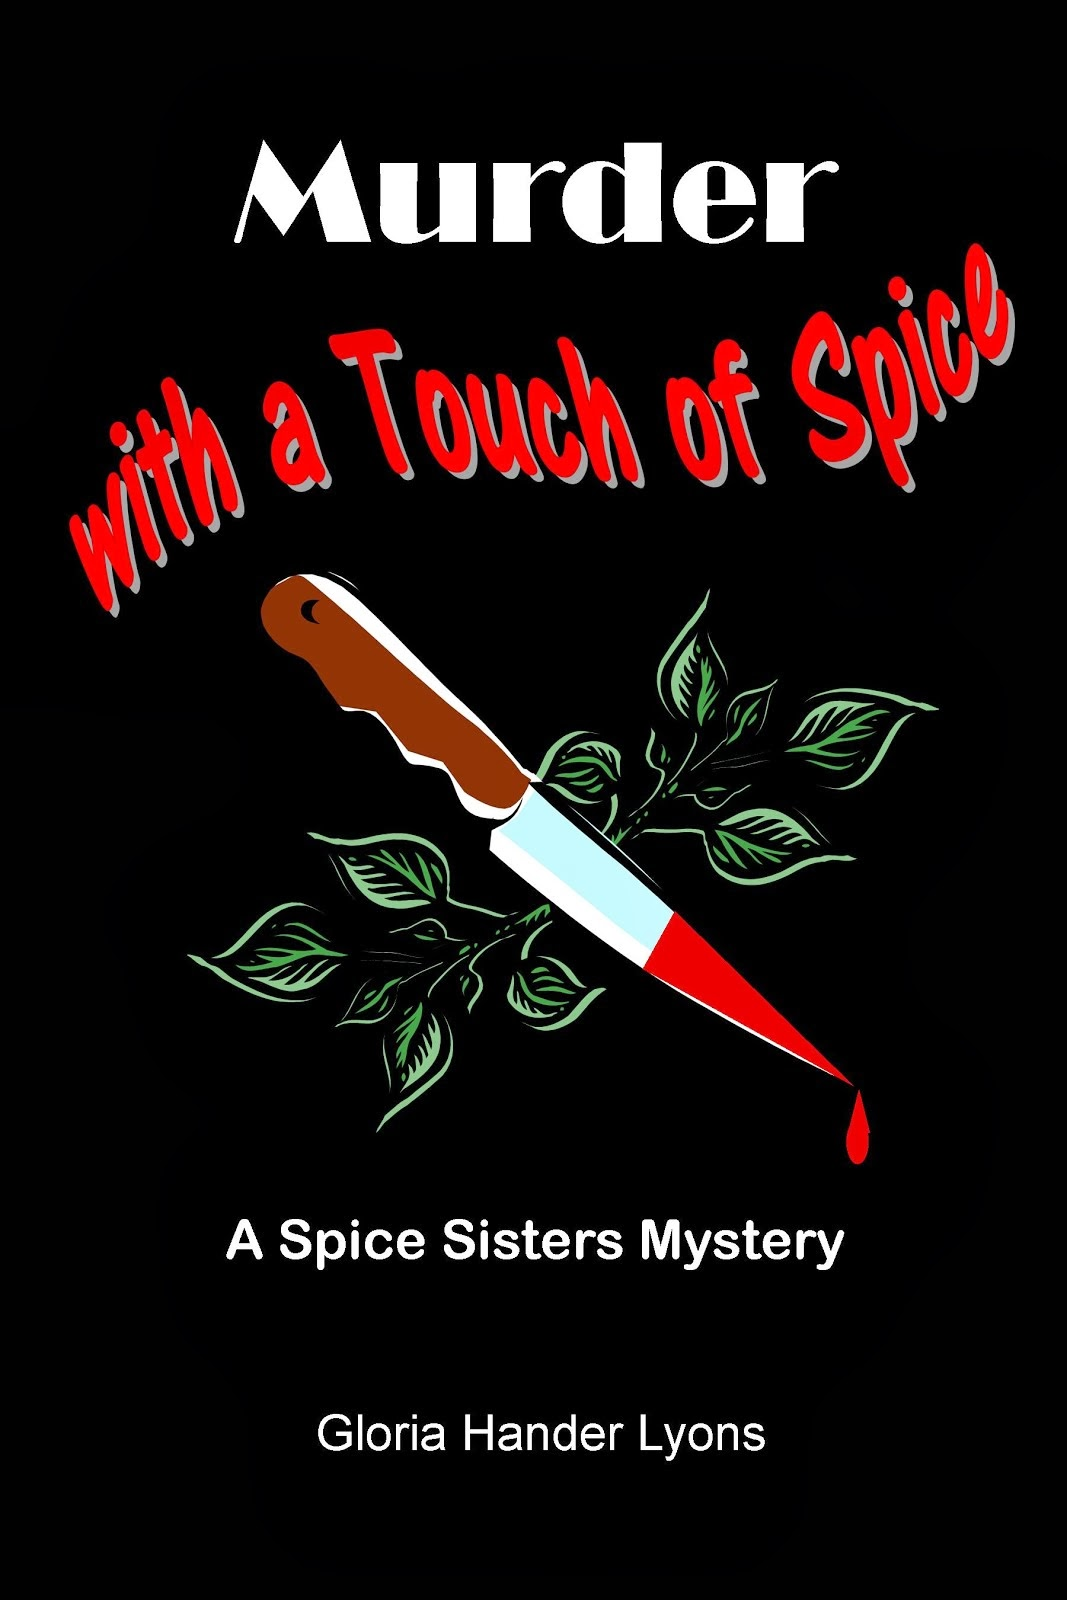 Murder with a Touch of Spice